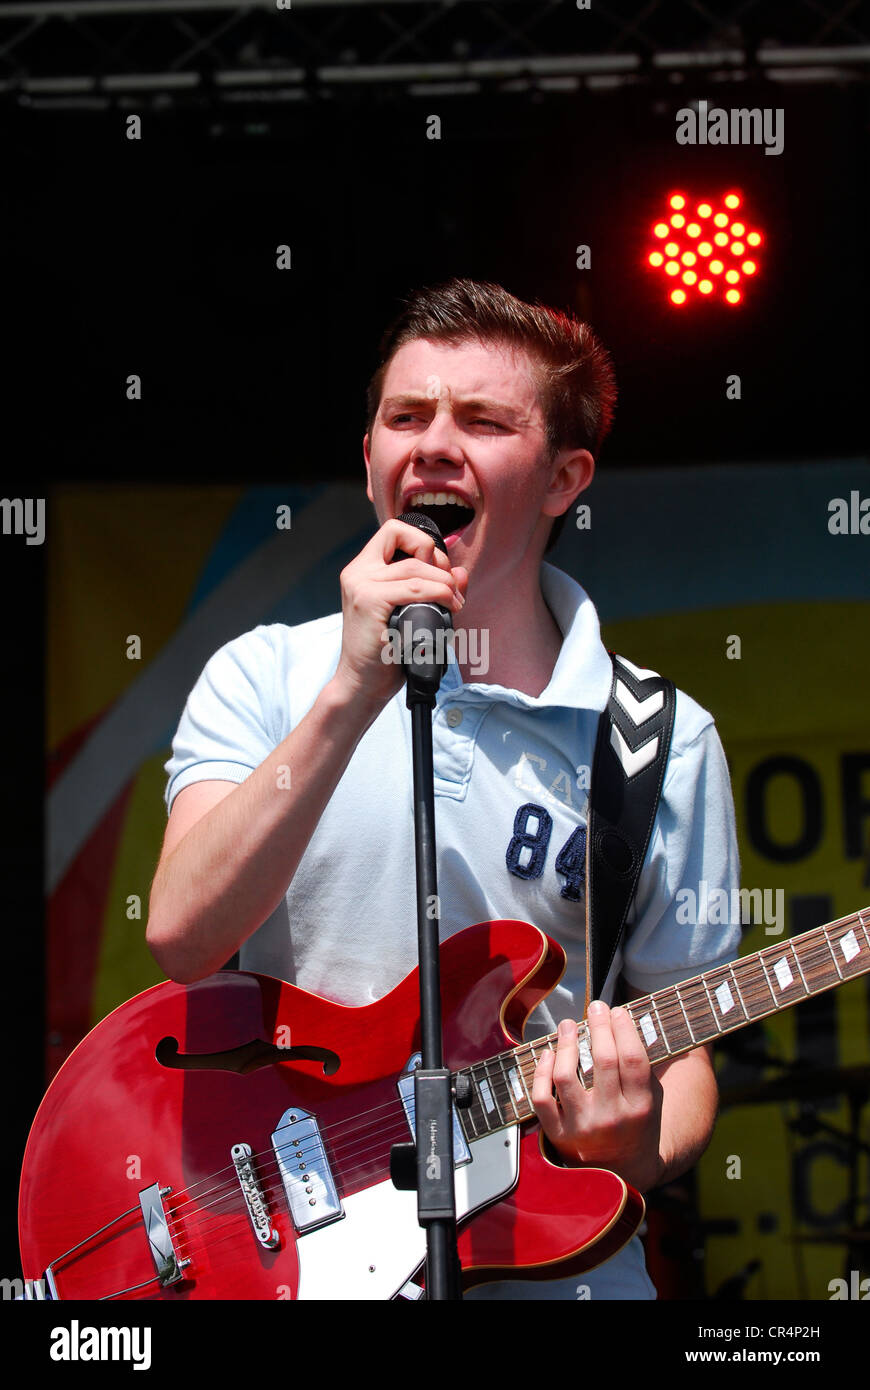 Lead singer of boy band Flash Fires performing at Alresford Music Festival, Alresford, Hampshire, UK. 9 June 2012. - Stock Image